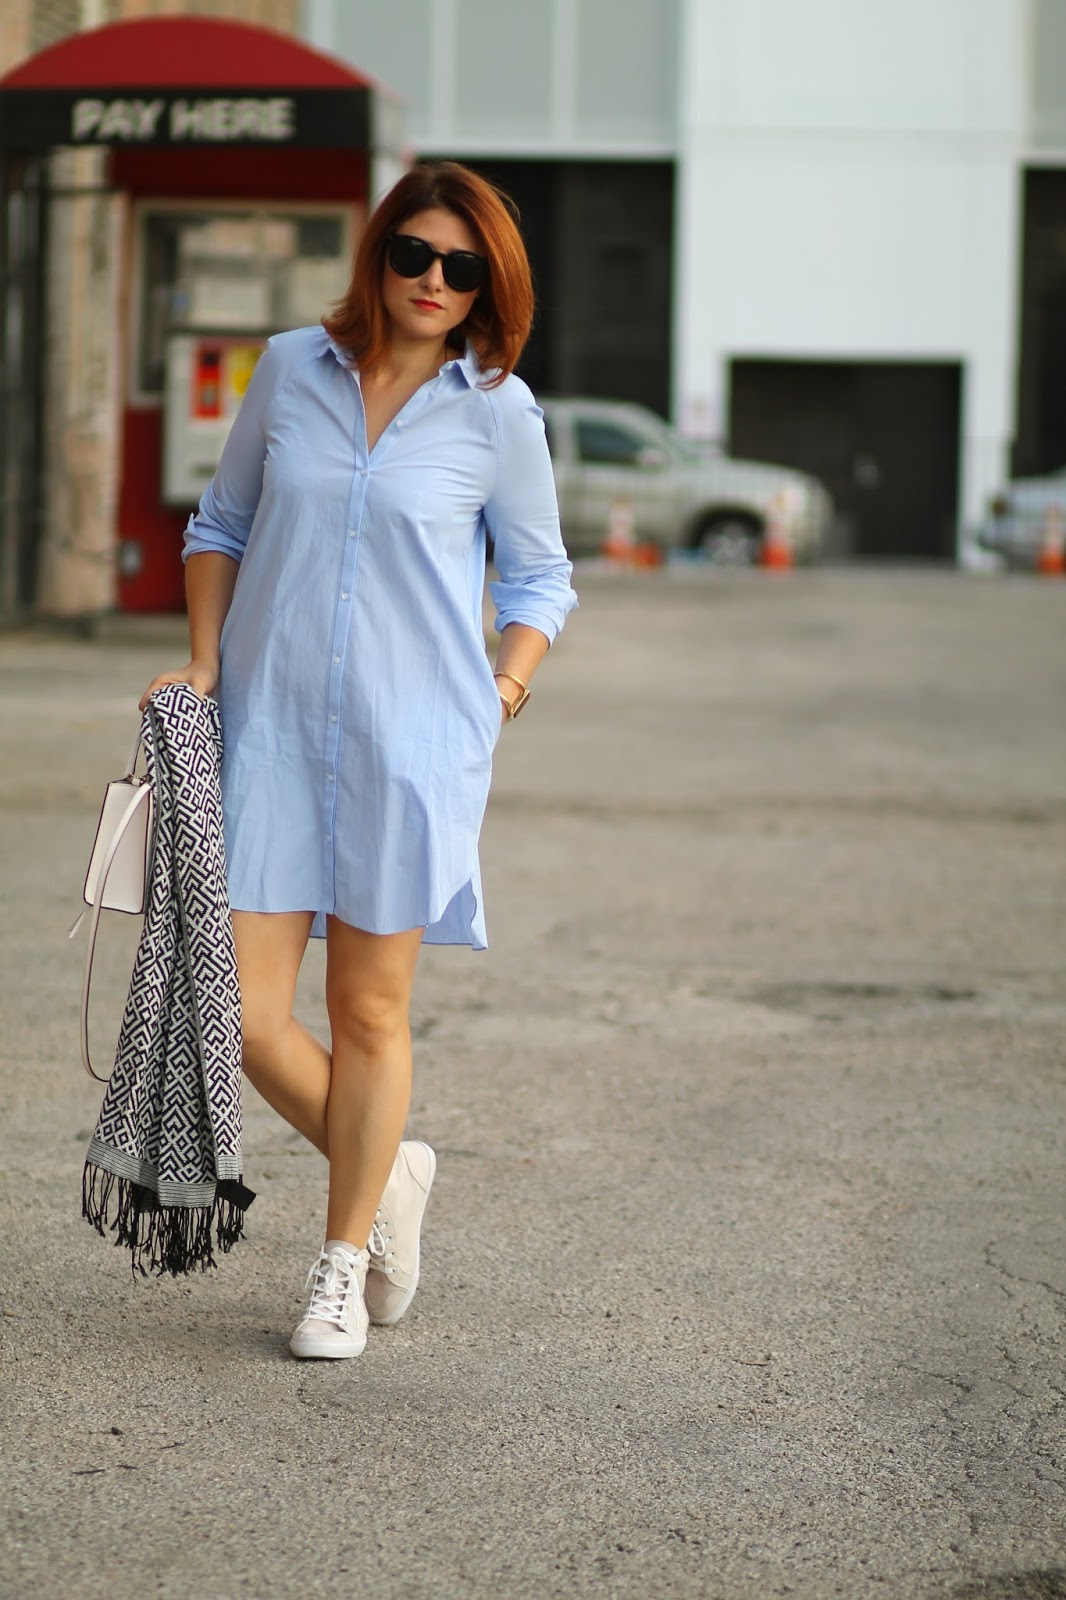 collared, shirtdress, blue